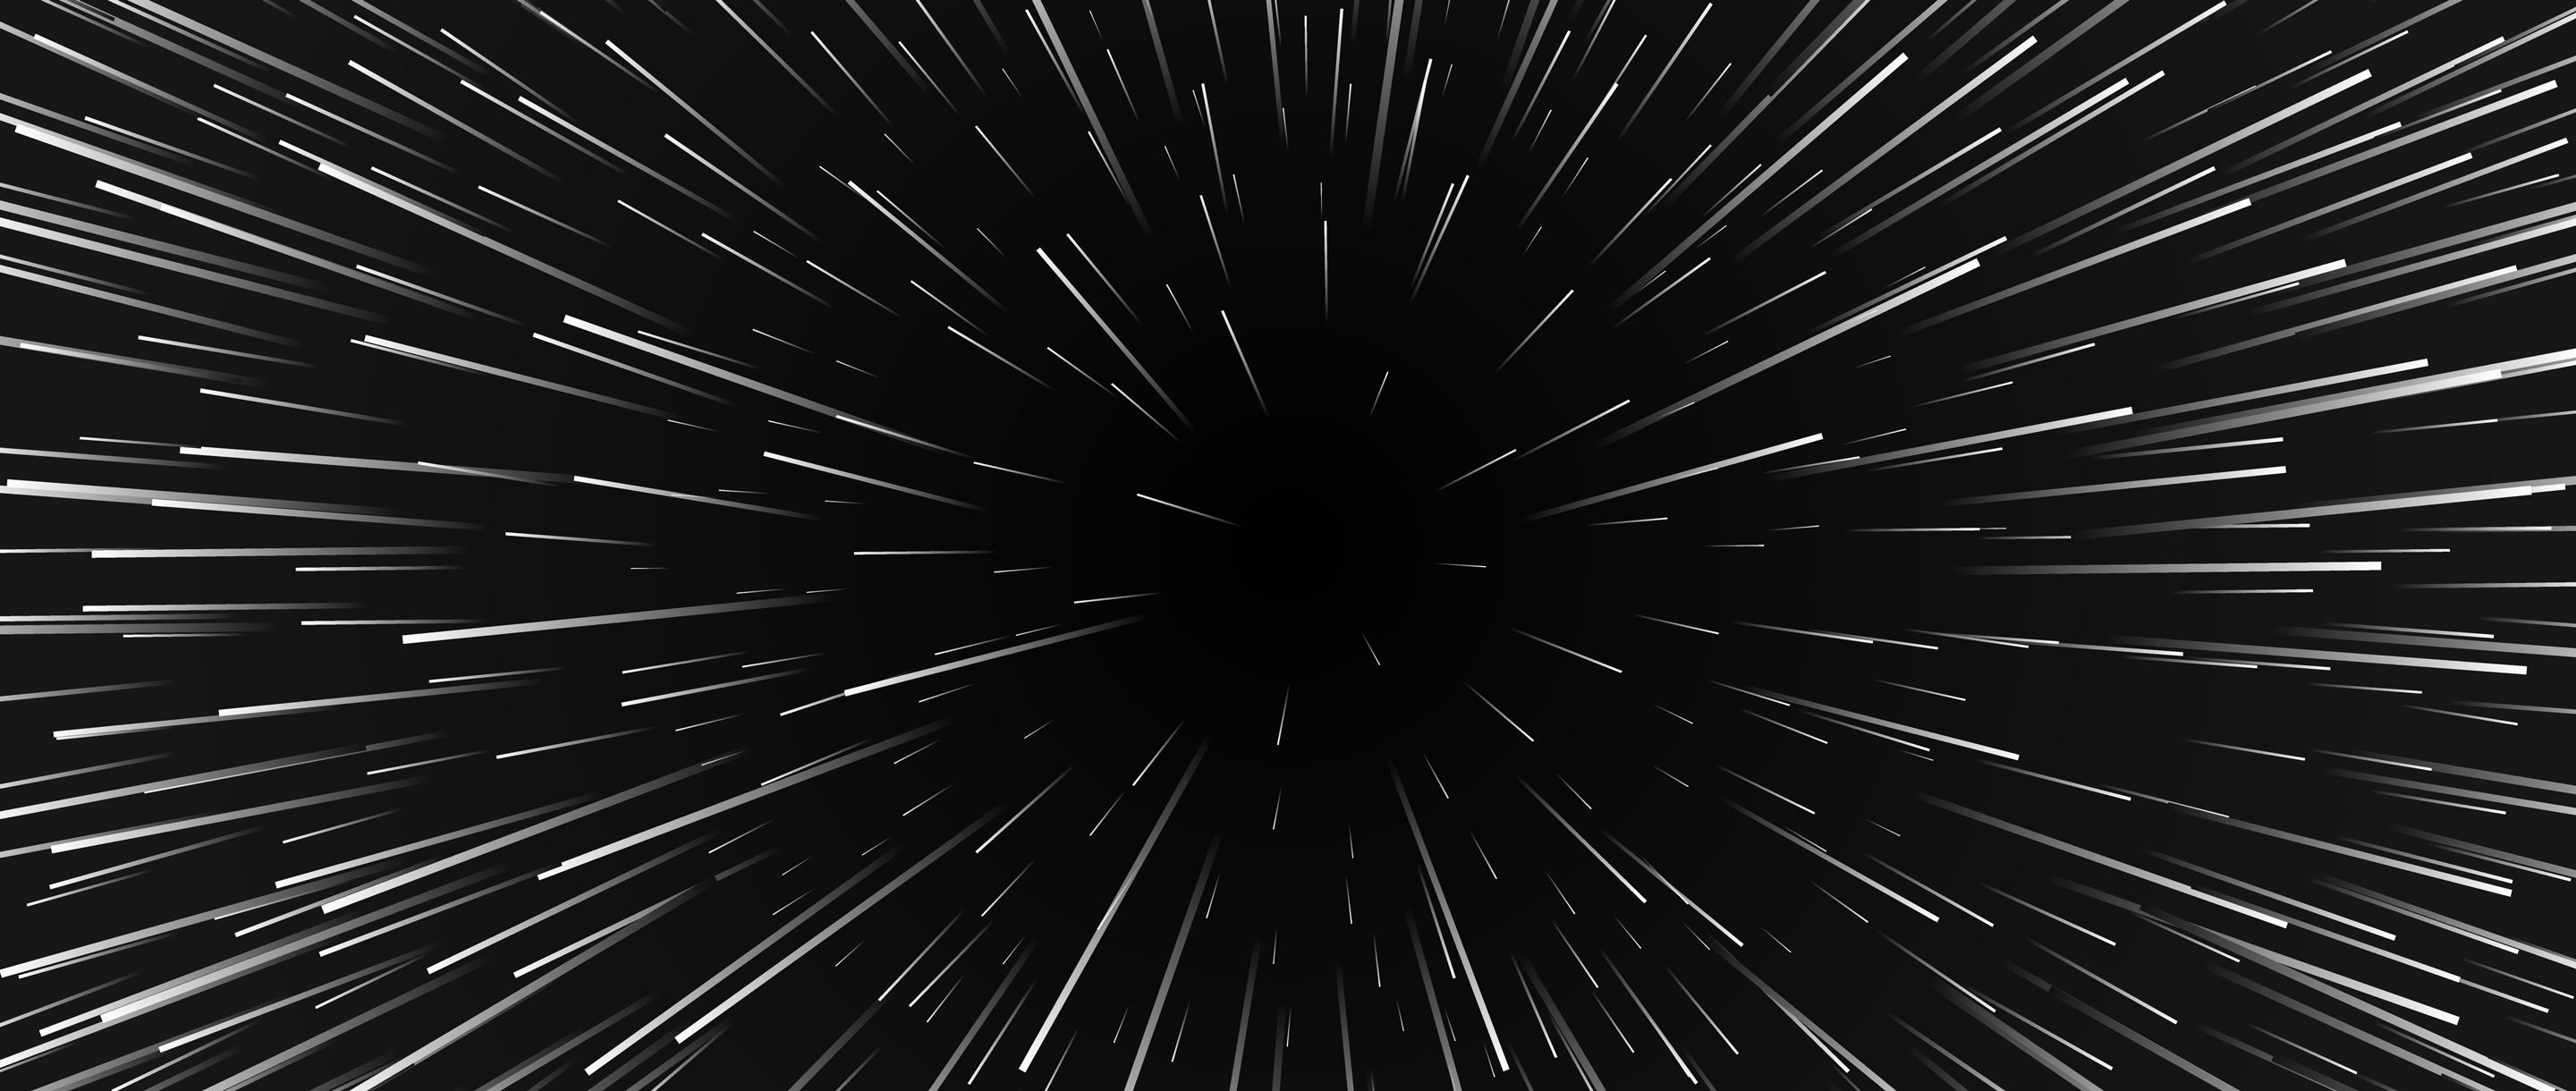 An image of space with lines emanating from a central point, as if the viewer is traveling at warp speed.